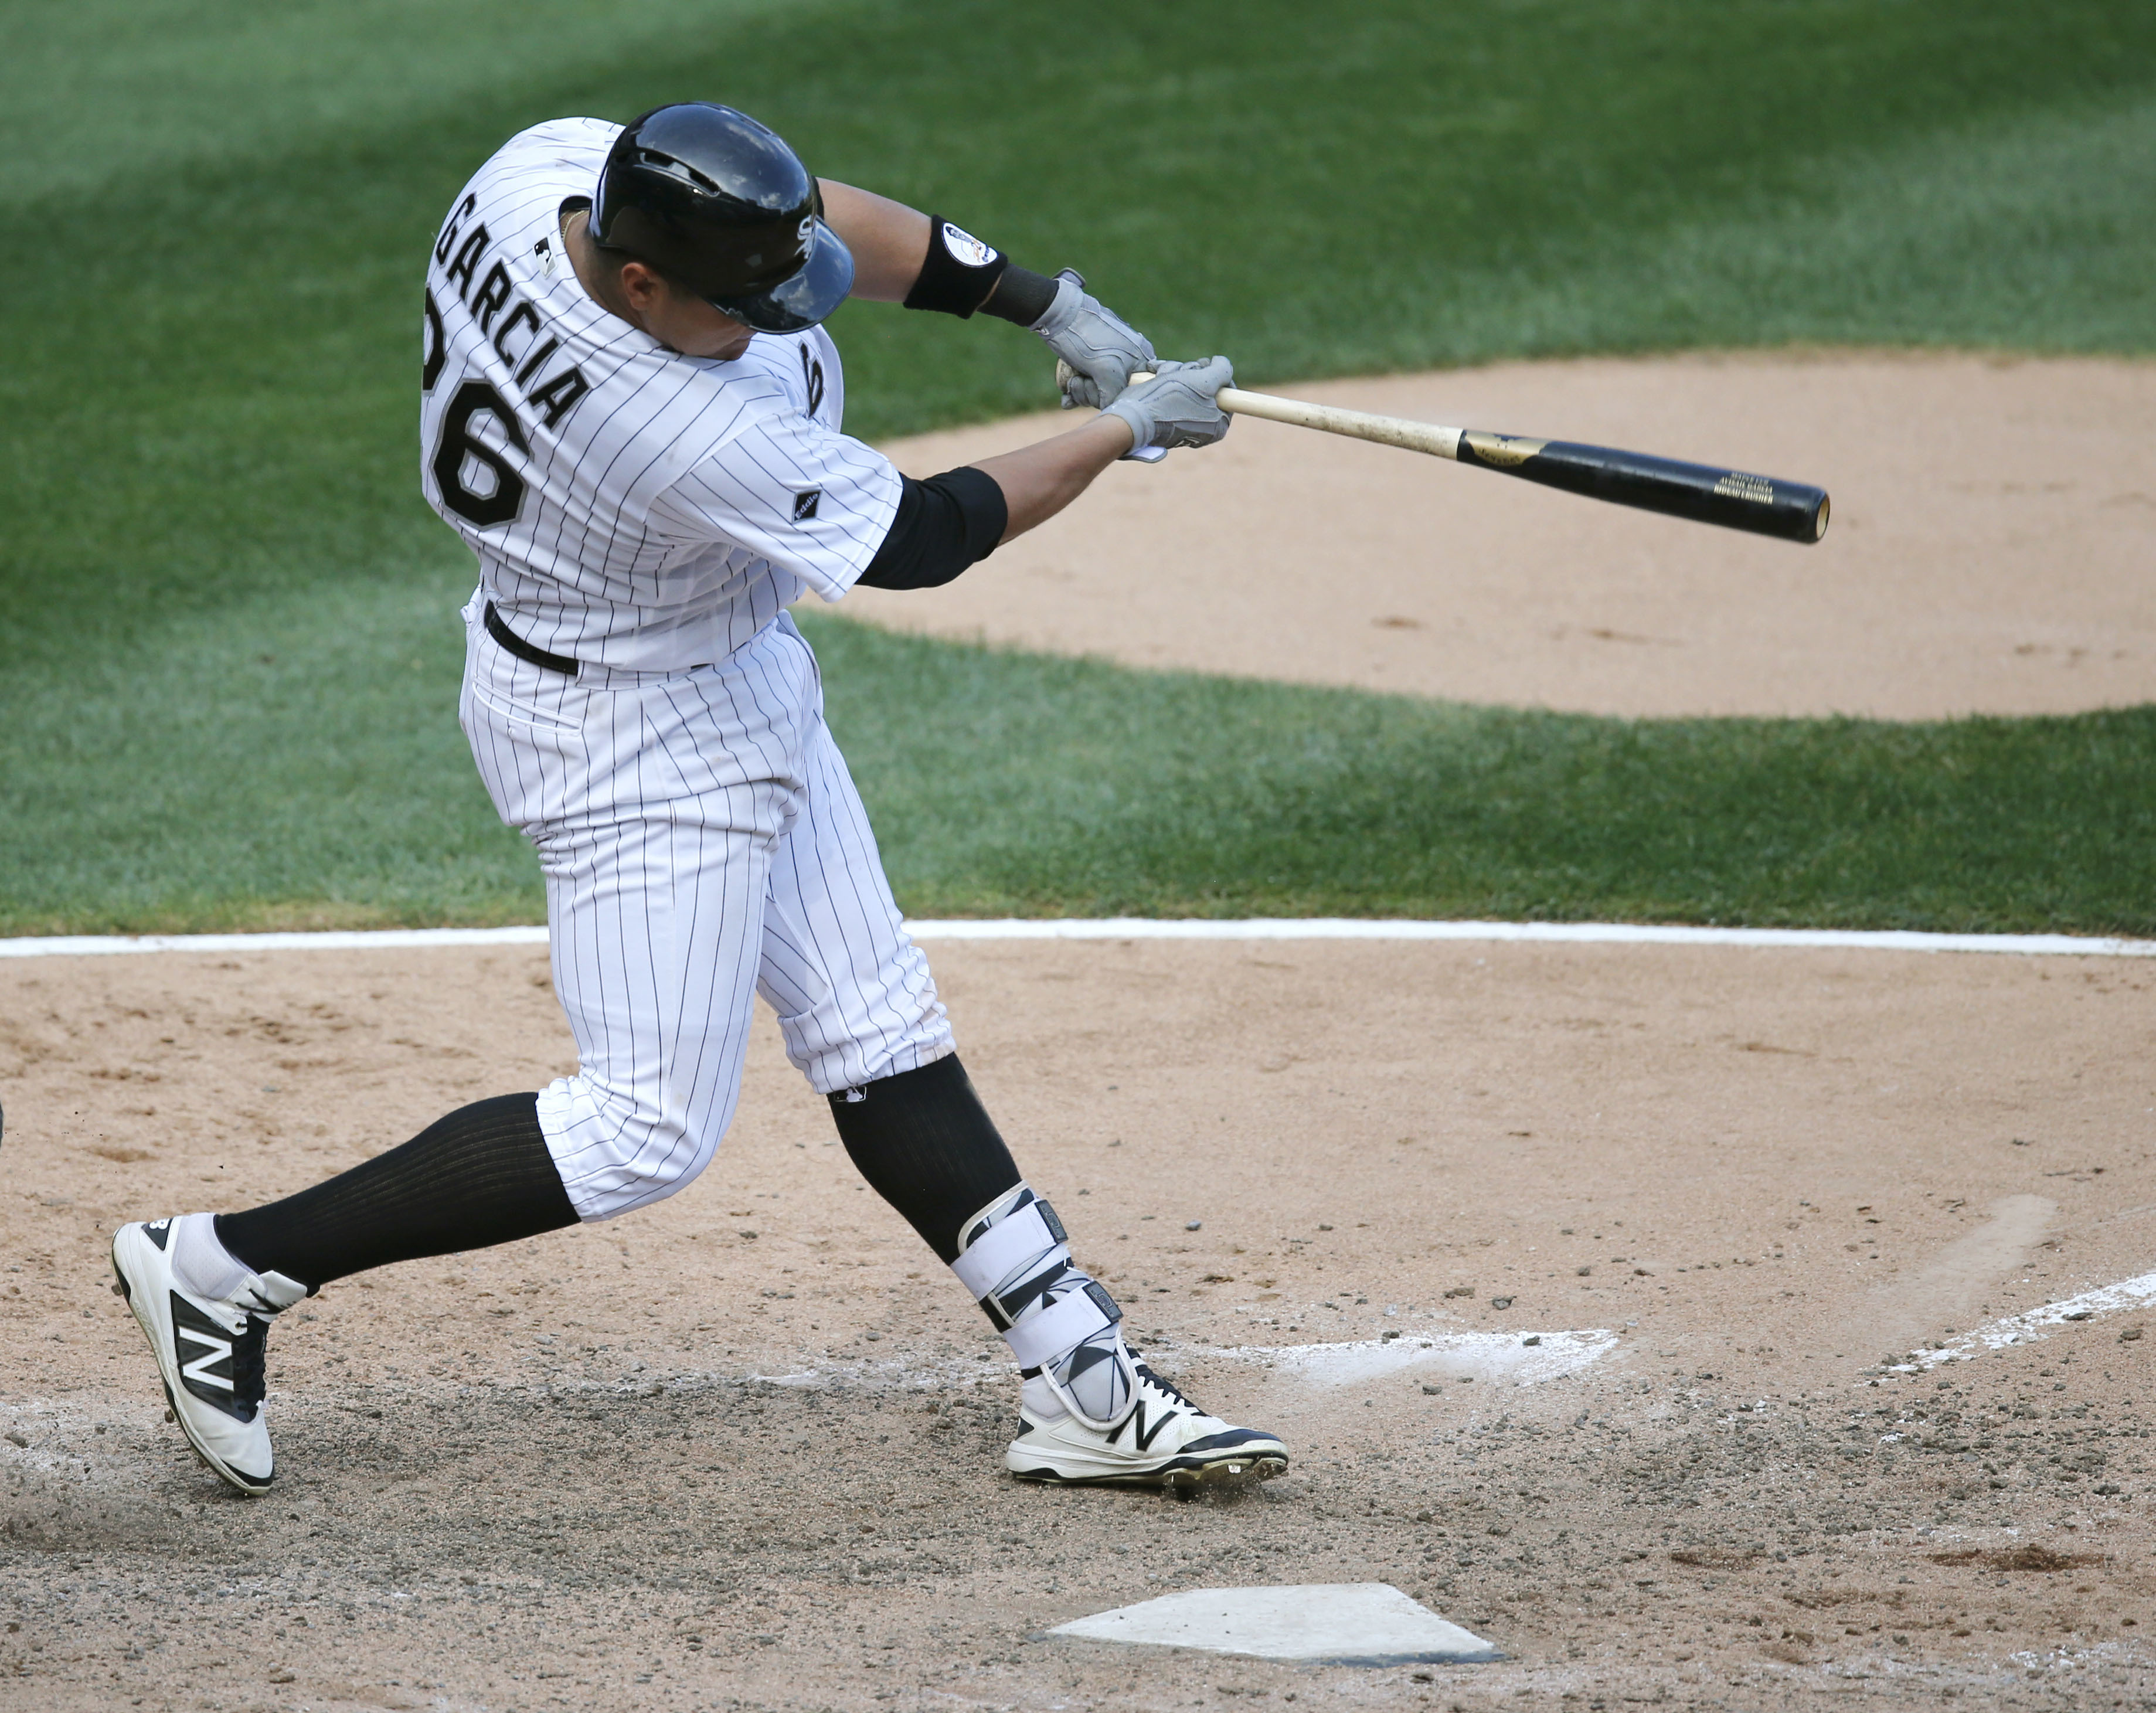 Chicago White Sox's Avisail Garcia hits an RBI single off Detroit Tigers' Shane Greene, scoring pinch-runner J.B. Shuck, during the eighth inning of a baseball game Wednesday, Sept. 7, 2016, in Chicago. (AP Photo/Charles Rex Arbogast)